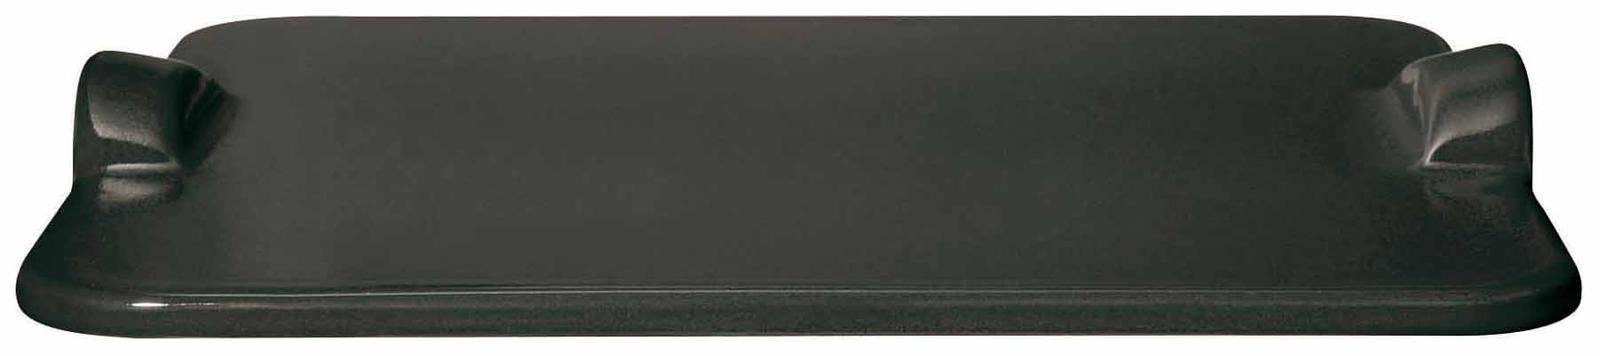 Emile Henry Made In France Flame BBQ Rectangular Grilling Baking Stone, 18 x 14'', Charcoal by Emile Henry